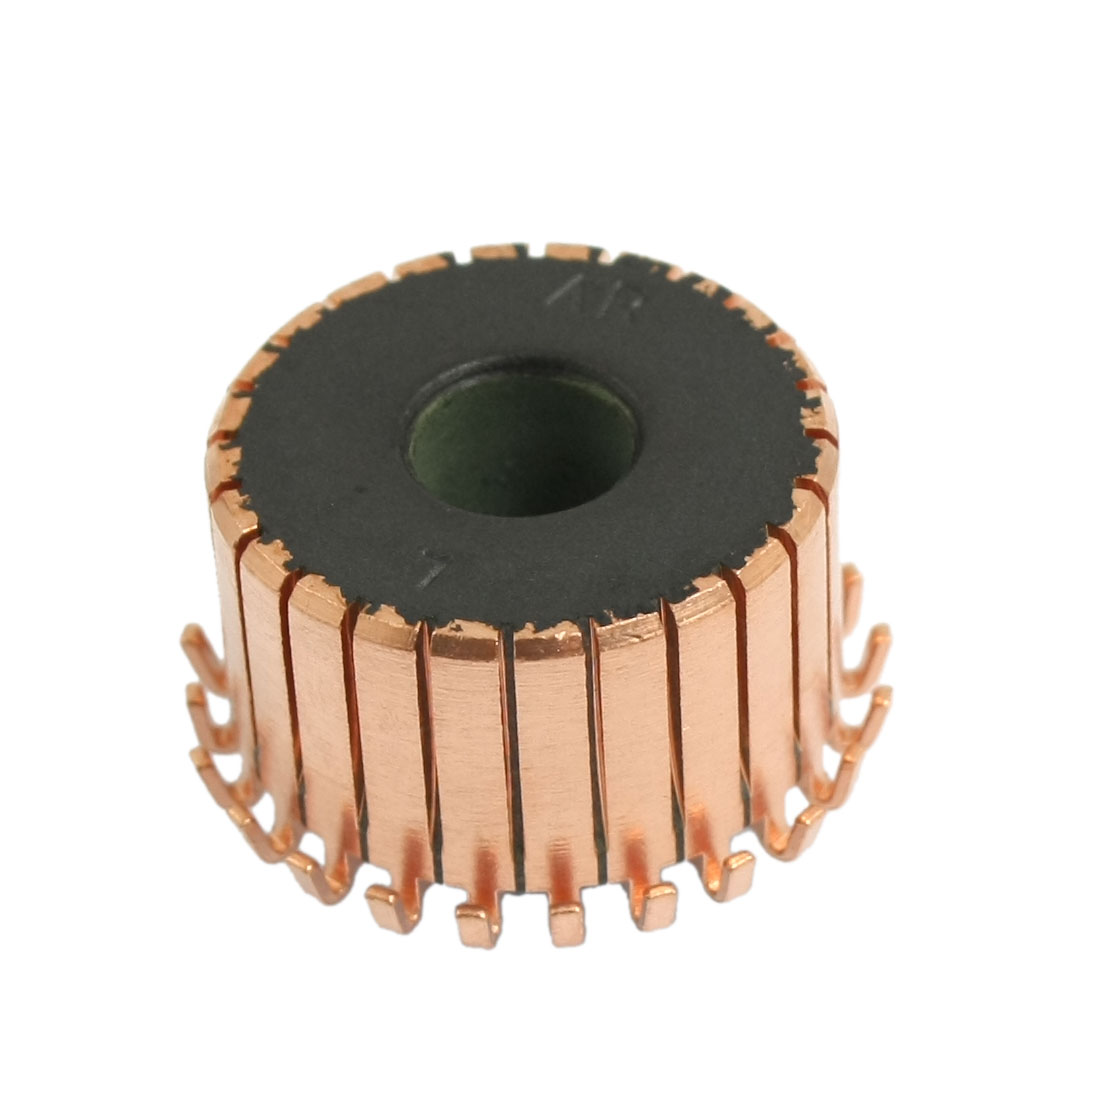 8mm Shaft Dimeter 24 Gear Tooth Copper Shell Mounted On Armature Commutator